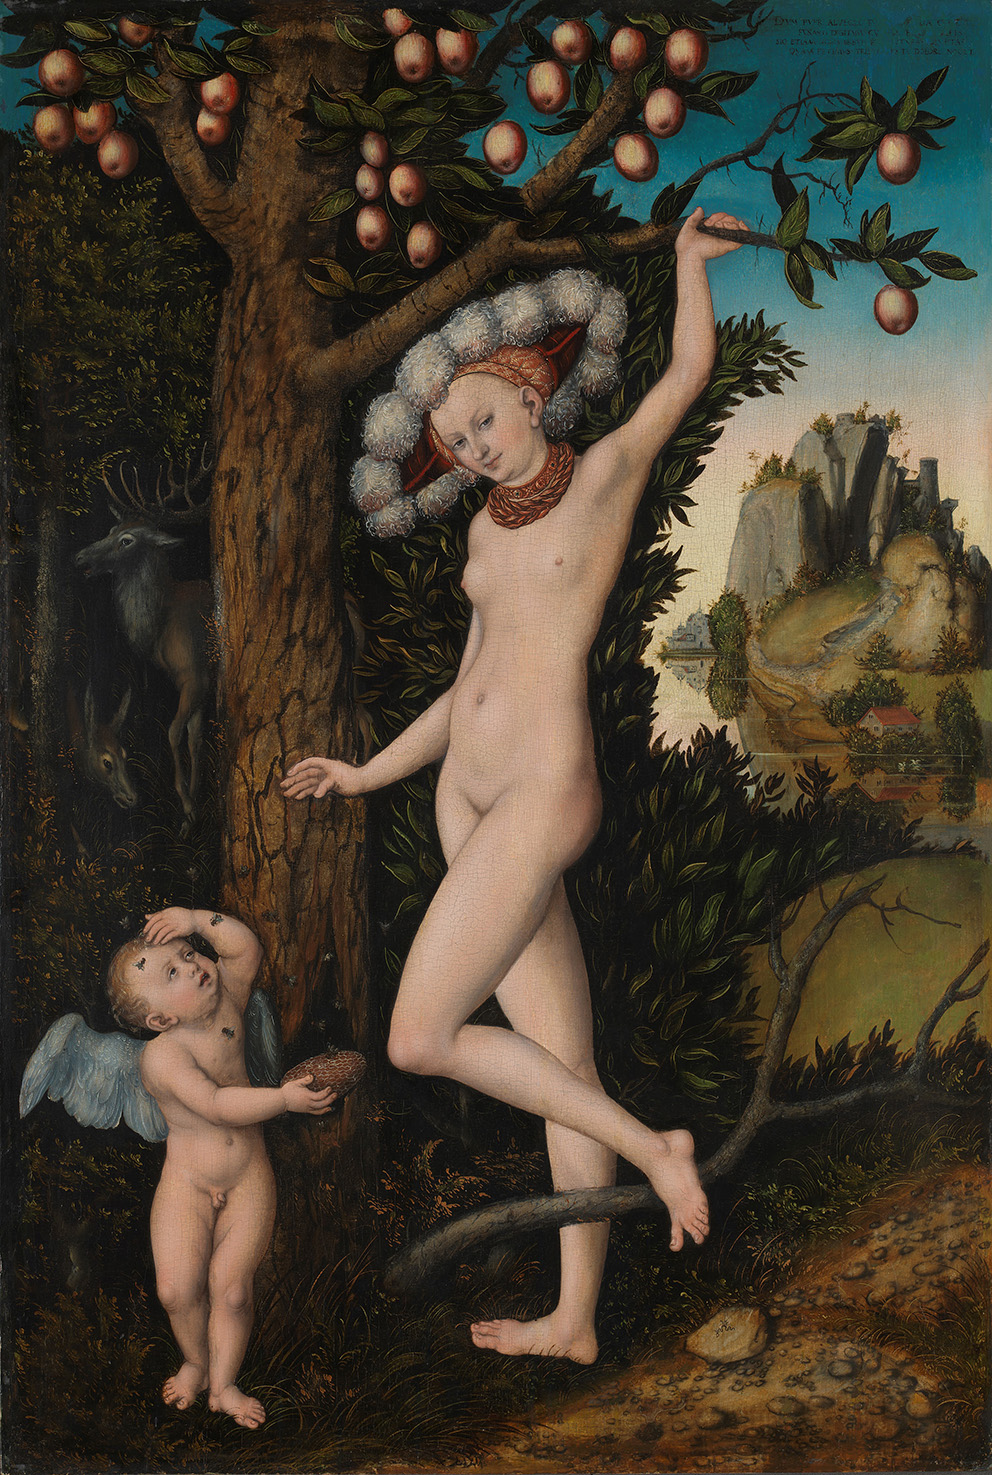 Lucas Cranach the Elder, Cupid complaining to Venus, 1526-27, oil on wood.Photograph © The National Gallery, London